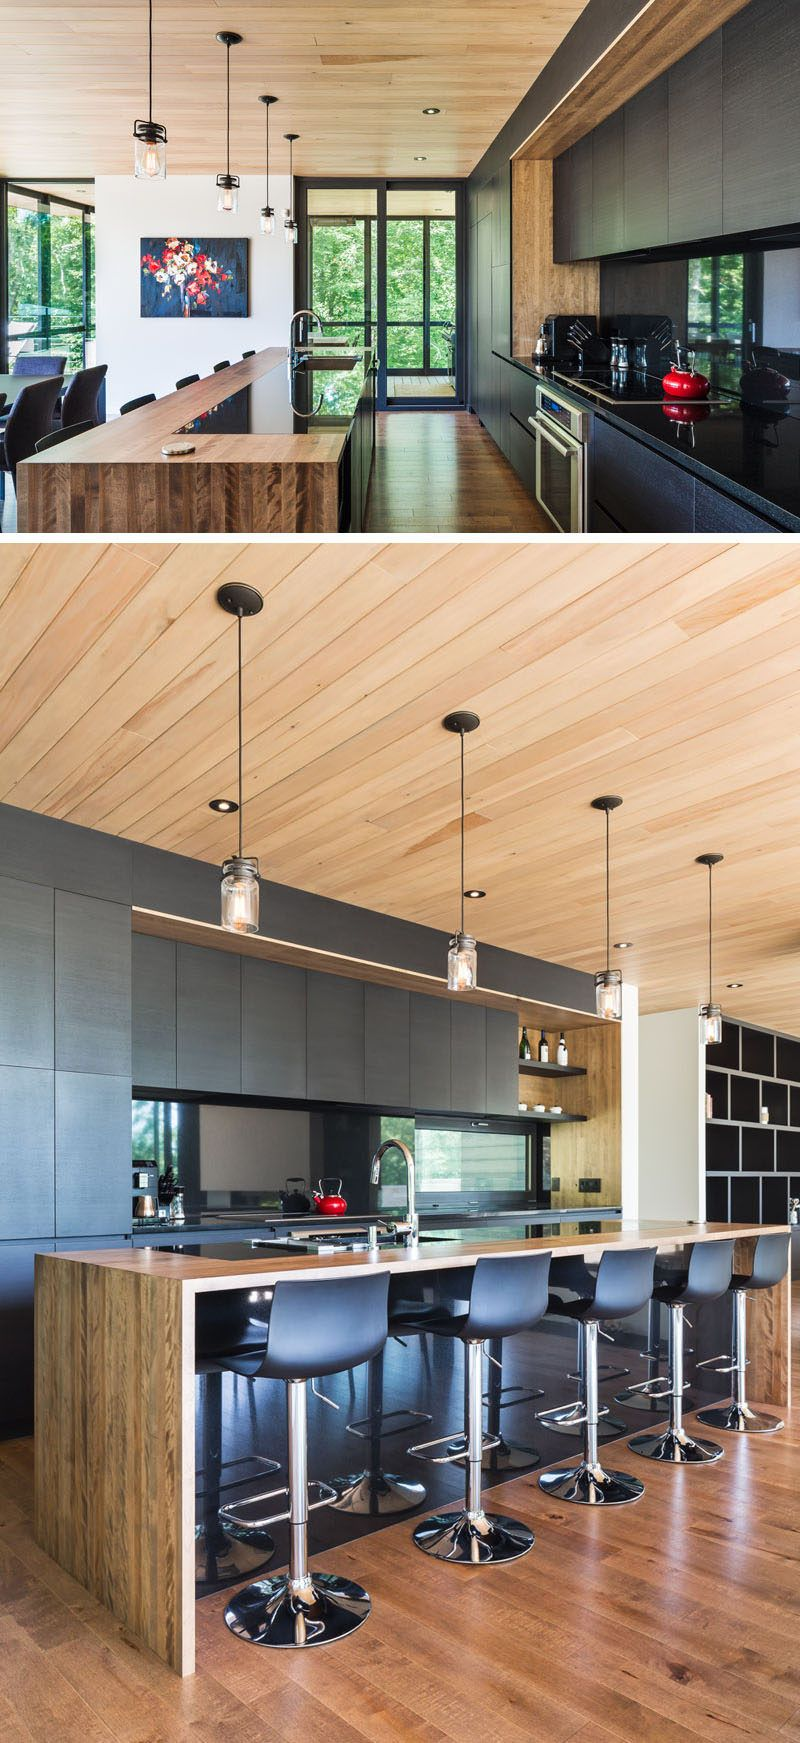 Wood And Stone Cover The Exterior Of This Multilevel Modern House Brilliant Ash Kitchen Cabinets Decorating Inspiration